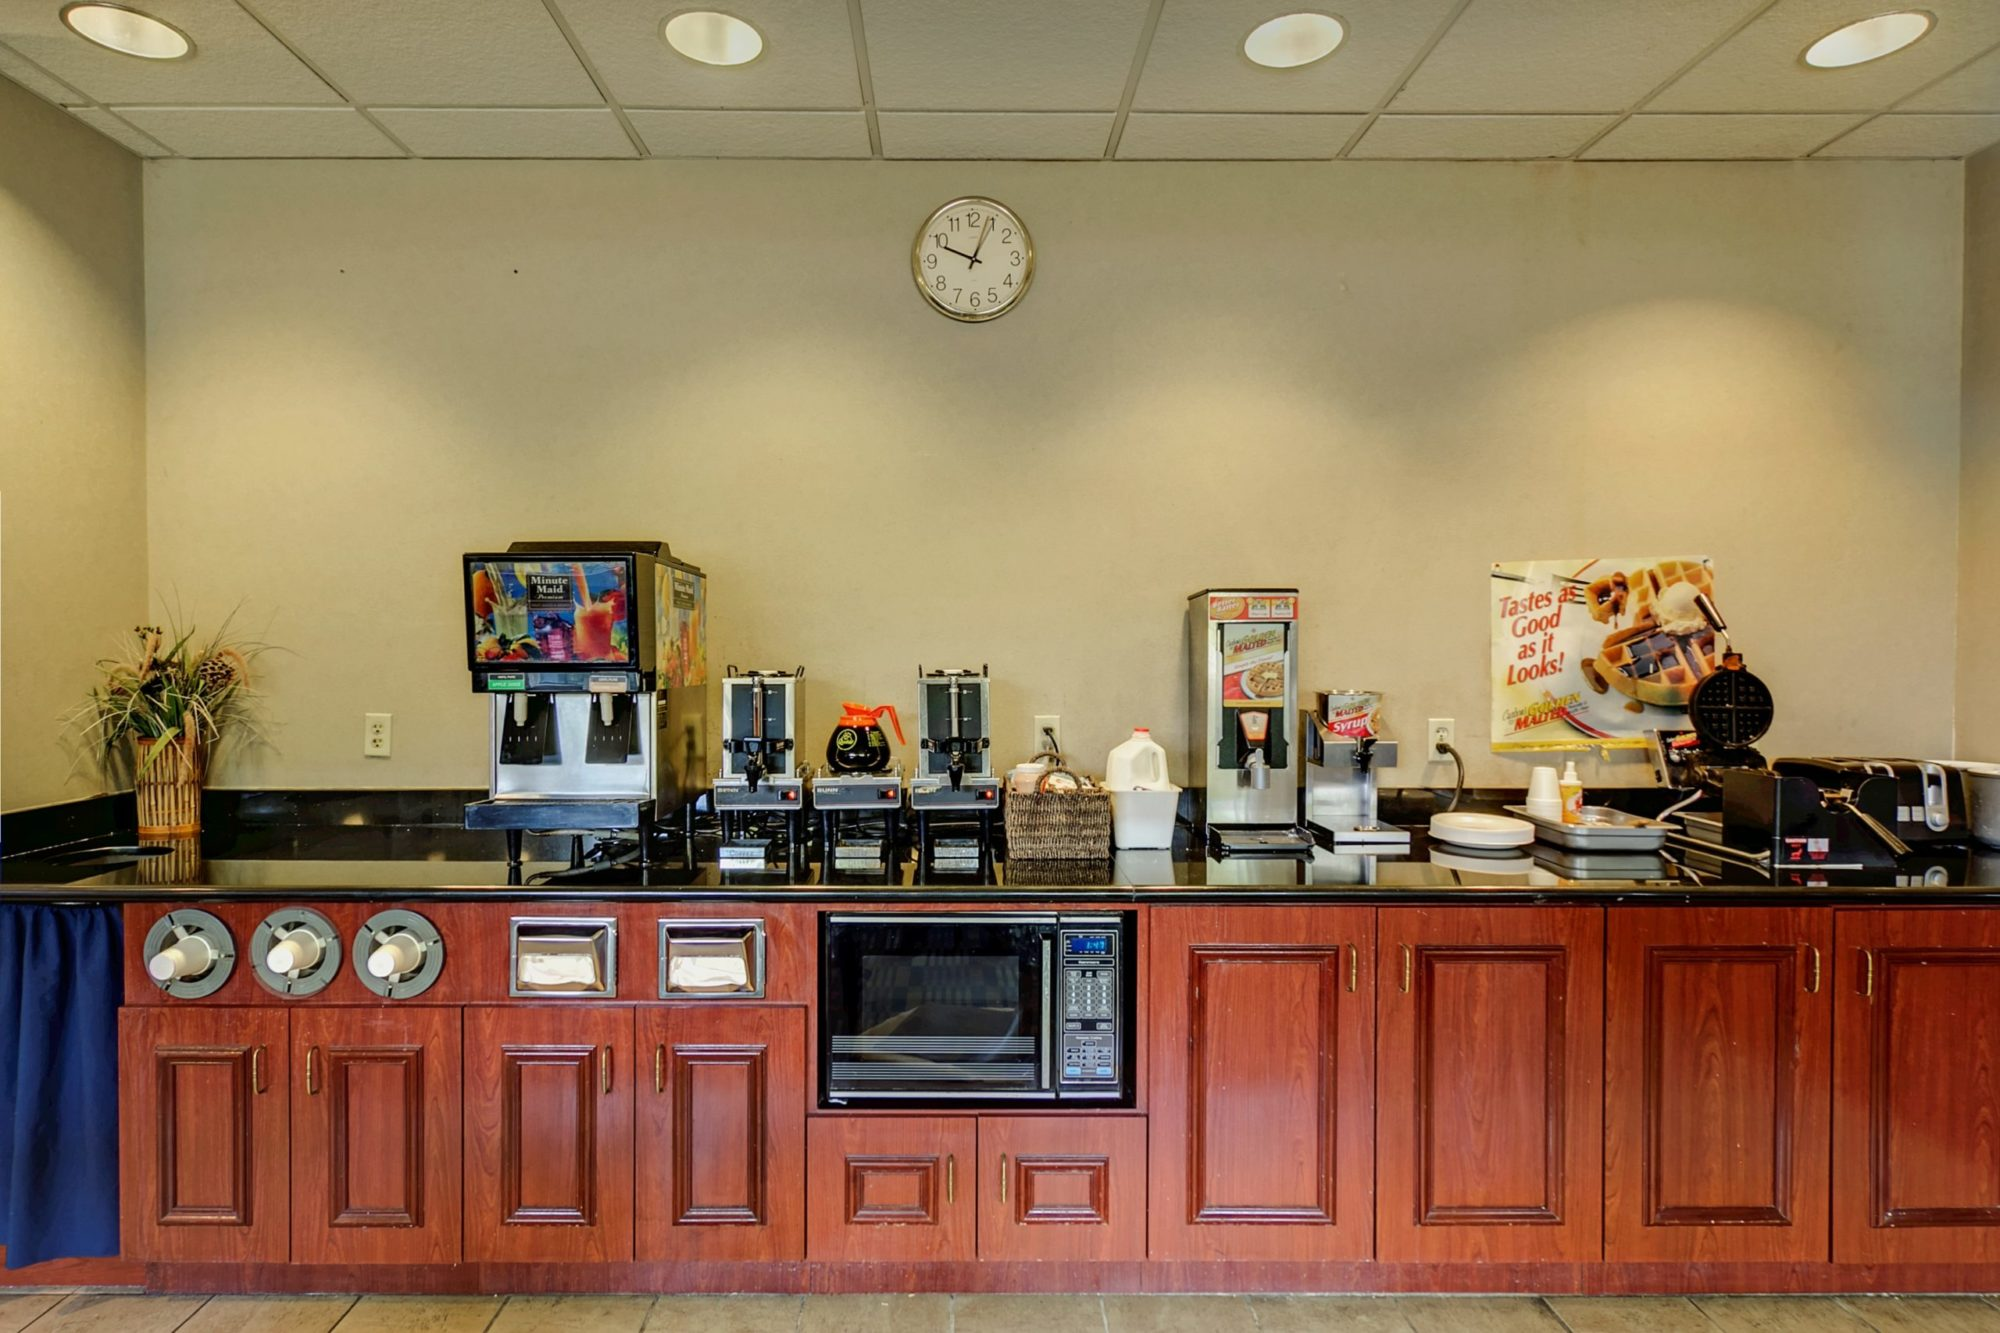 breakfast display with coffee, juice machines, waffle maker and toaster